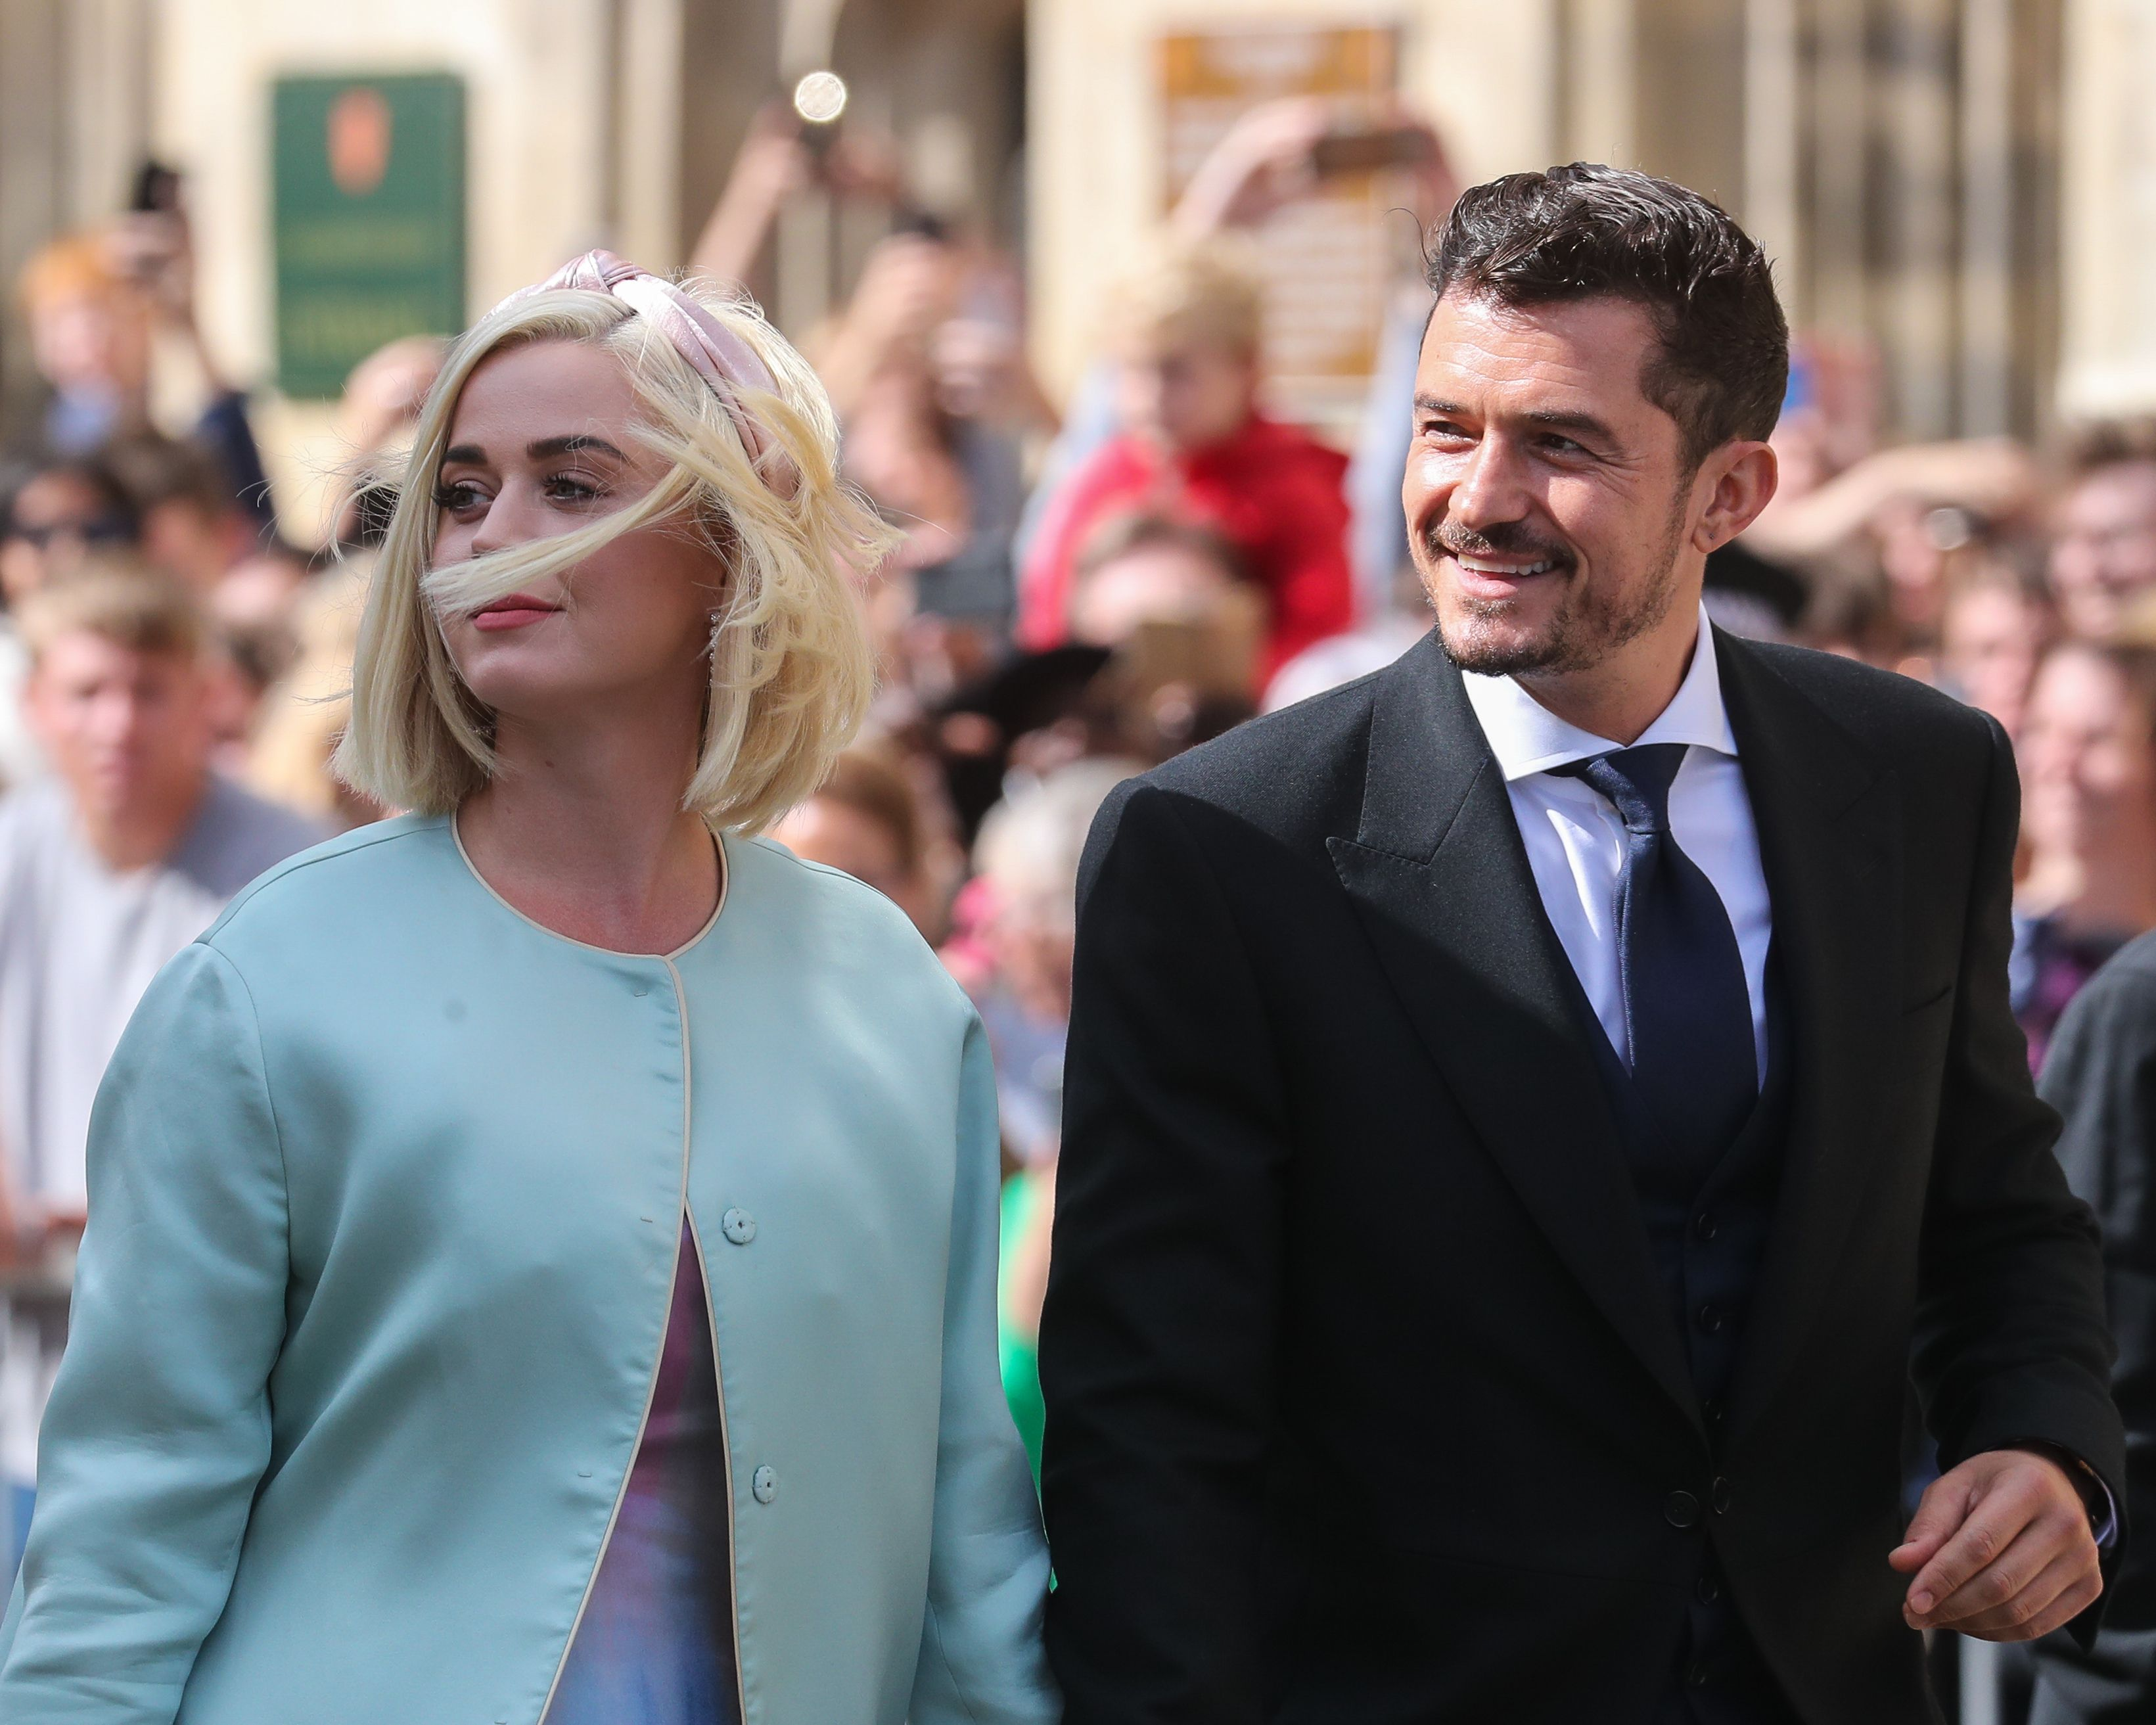 Katy Perry and Orlando Bloom seen at the wedding of Ellie Goulding and Caspar Jopling / Getty Images